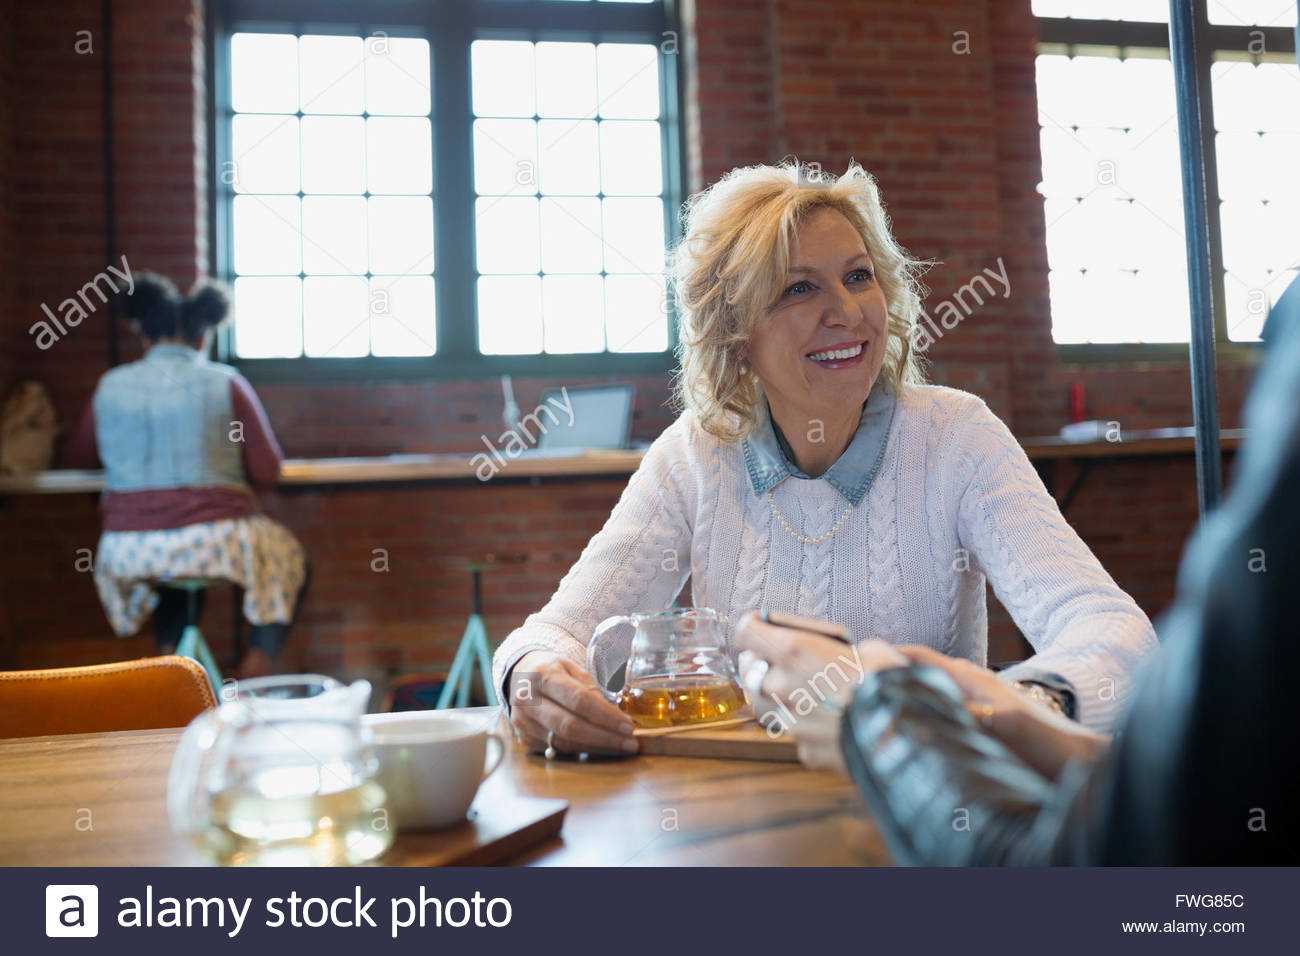 Smiling woman drinking tea at coffee shop - Stock Image